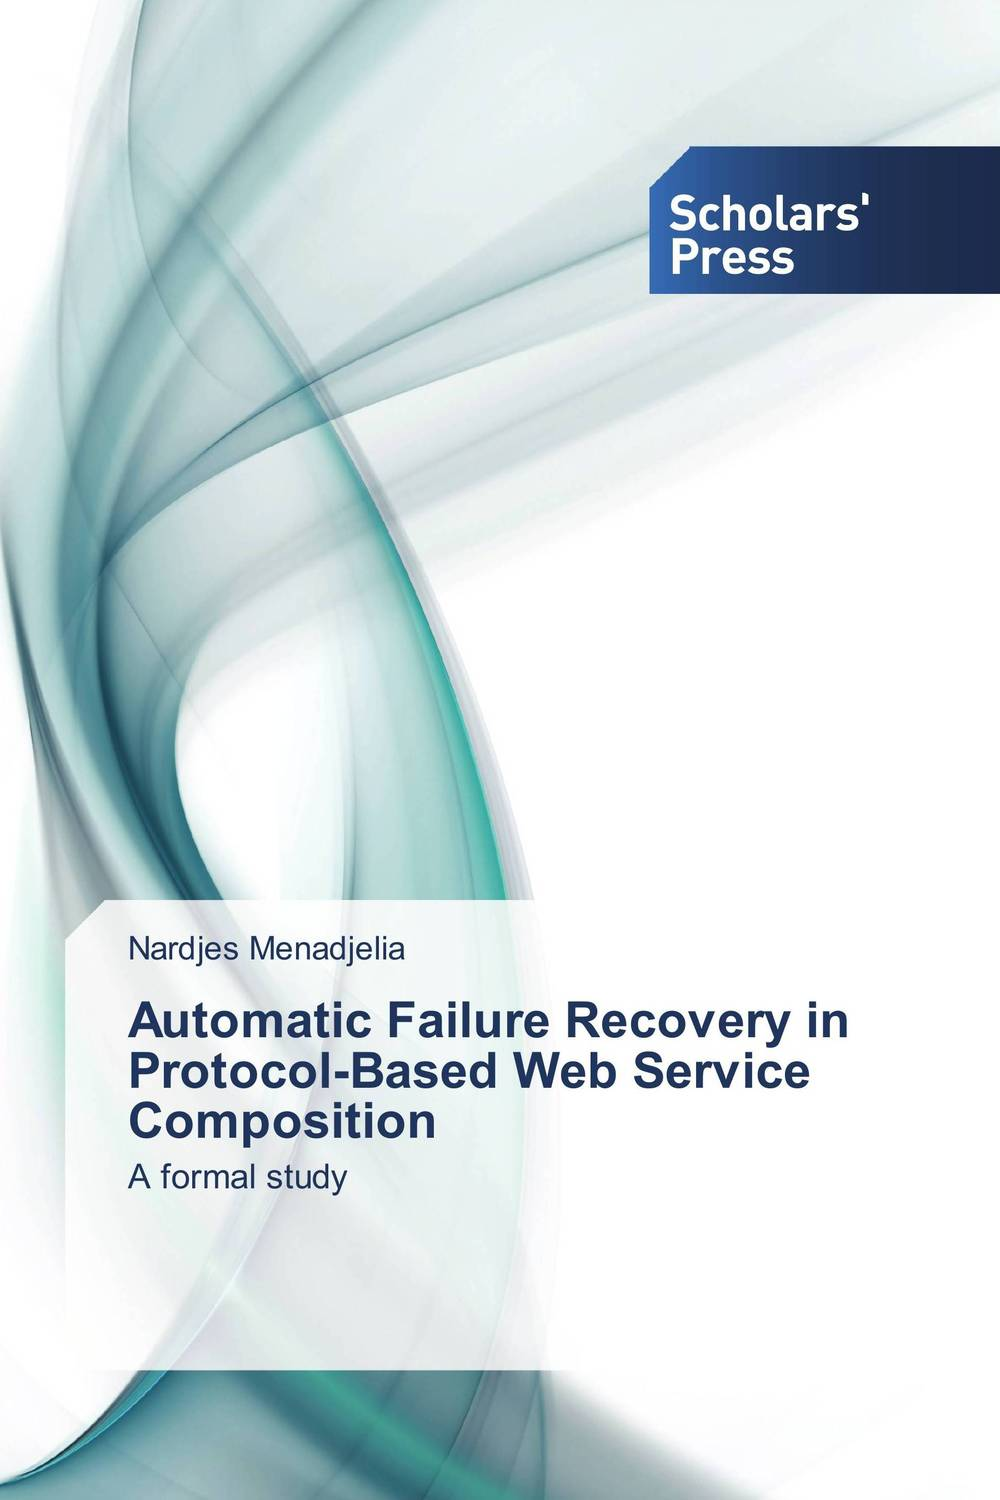 Automatic Failure Recovery in Protocol-Based Web Service Composition network recovery